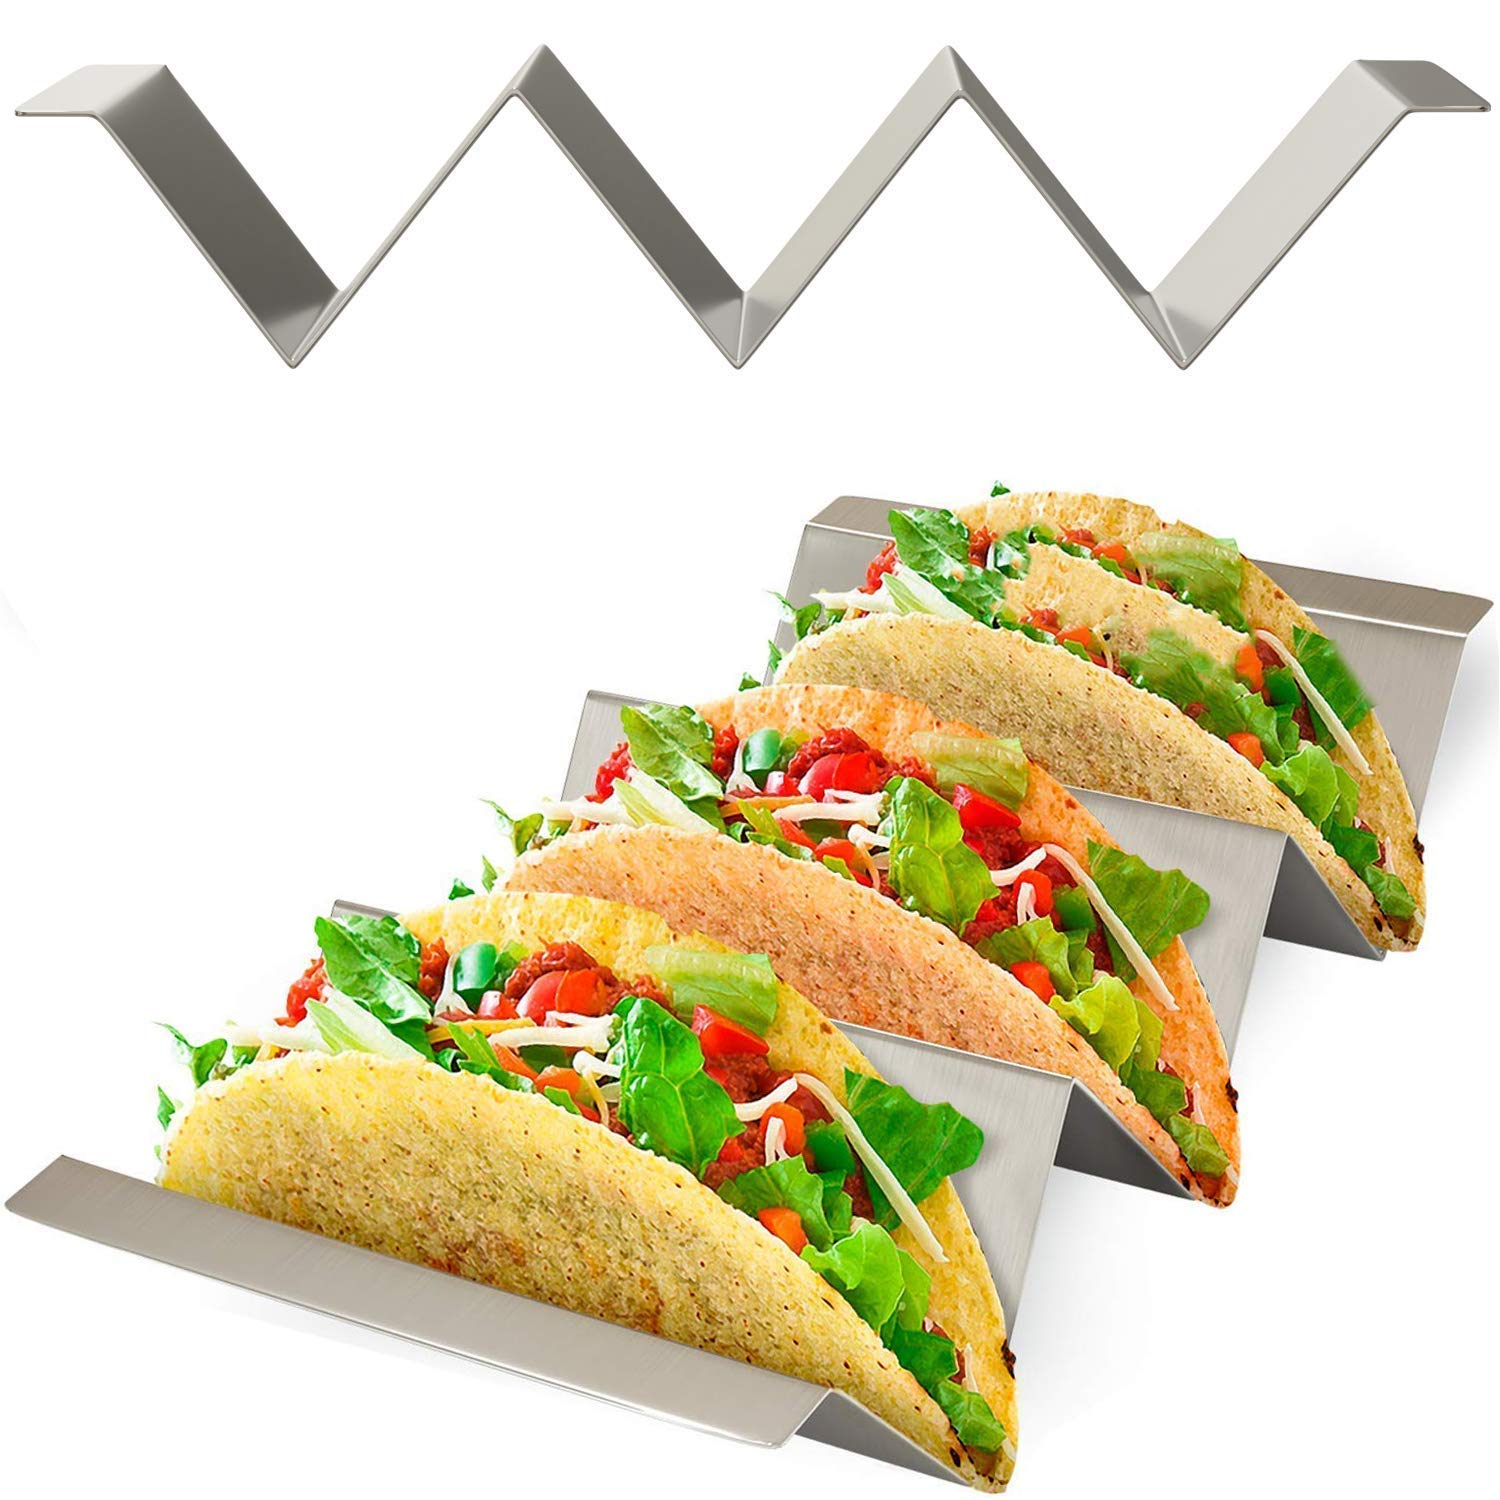 Taco Holder Stand with Easy Carry Handles 4 Pack Stainless Steel Racks for Taco Shell, Tortilla, Burrito, Fajita And More.